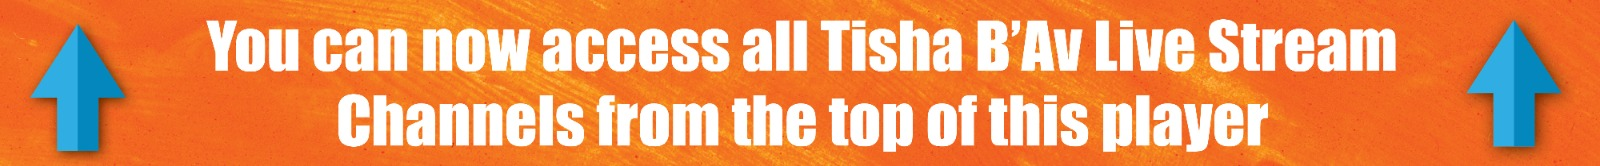 Browse Tisha B'Av Programs From the Top of the Player